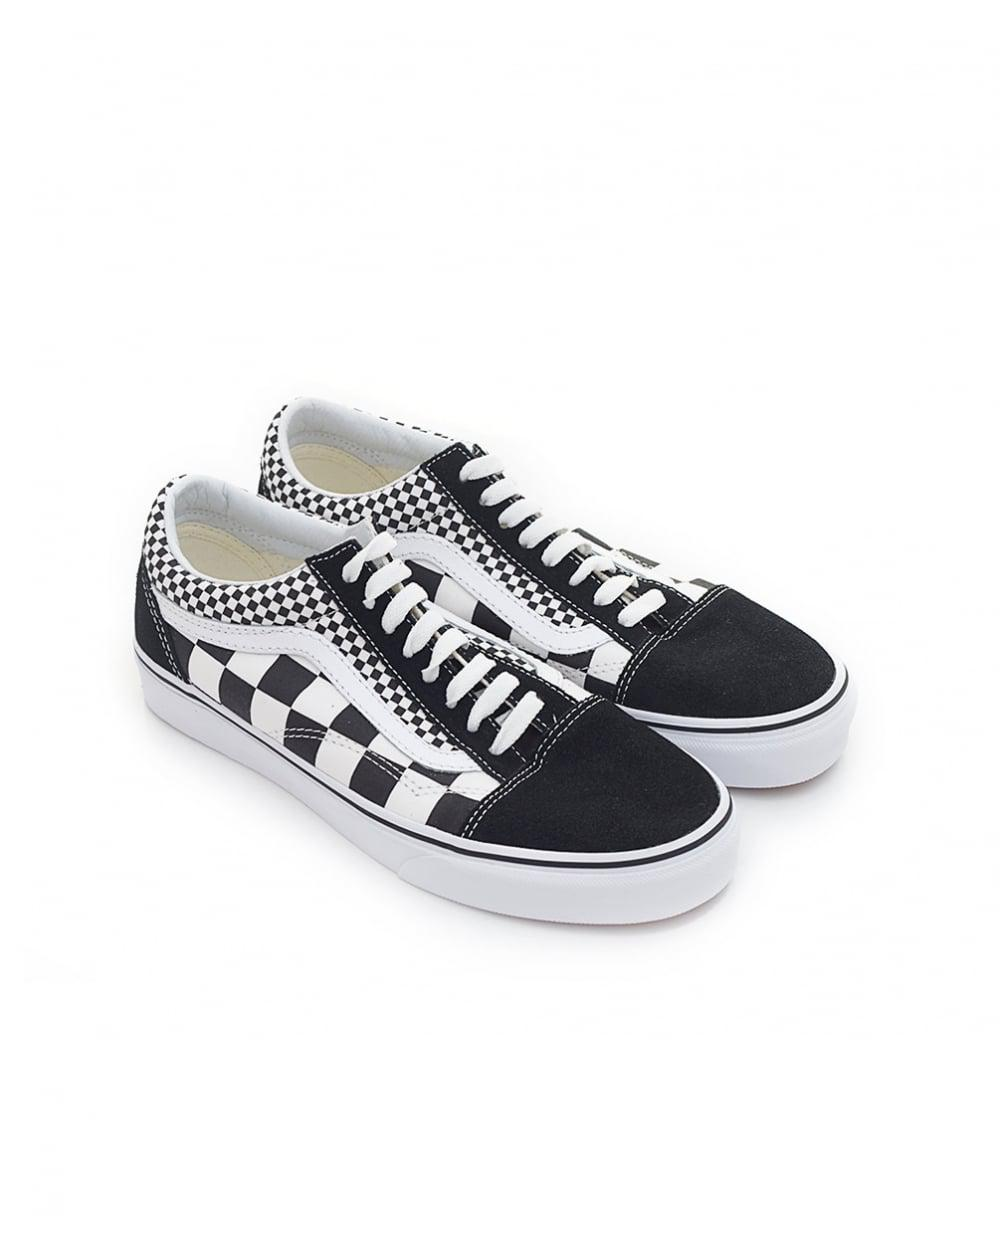 141a9fceca66 Lyst - Vans Old Skool Mixed Check Trainers for Men